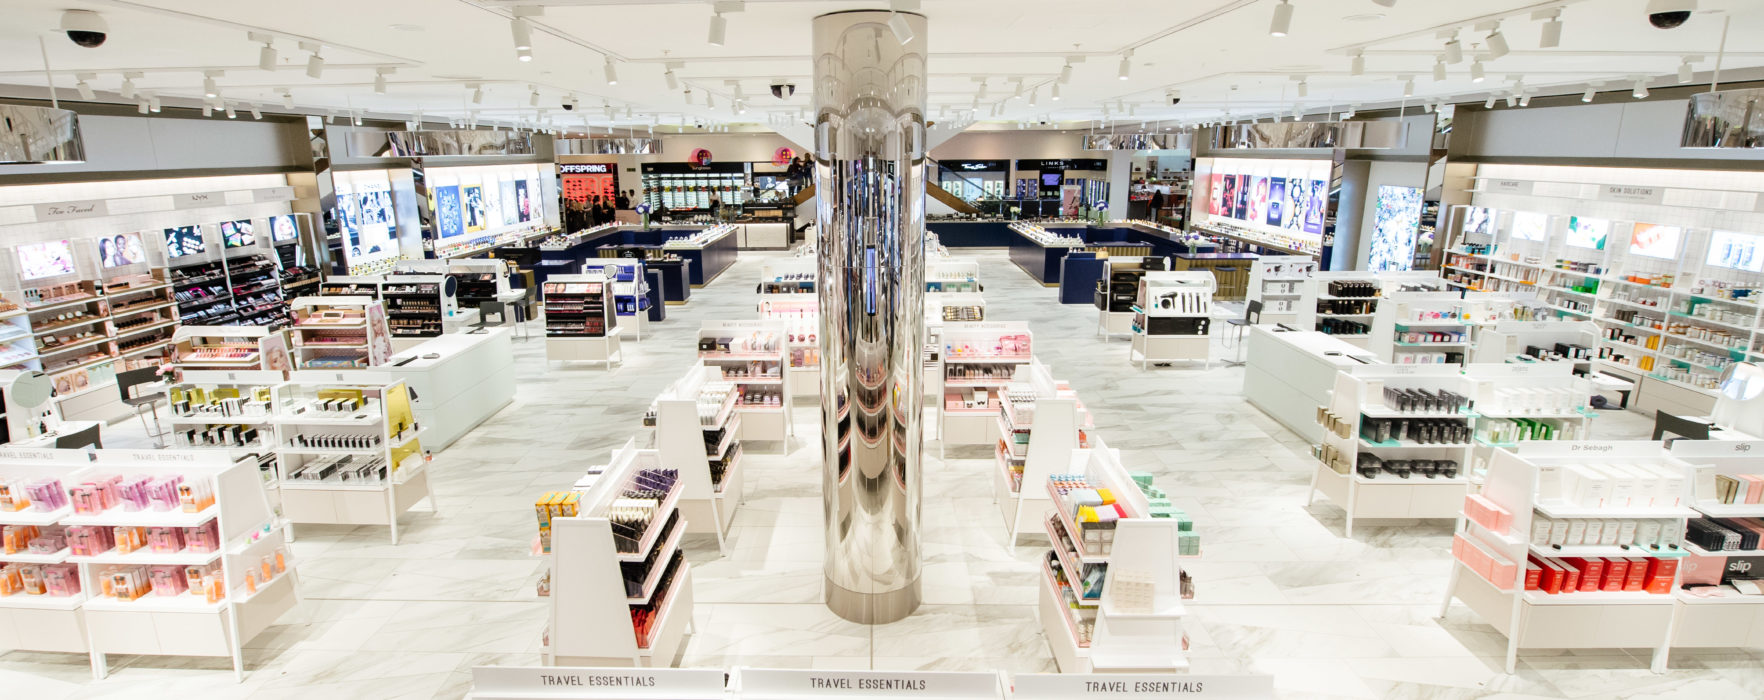 Selfridges launches pop-up social space after unveiling new look beauty hall